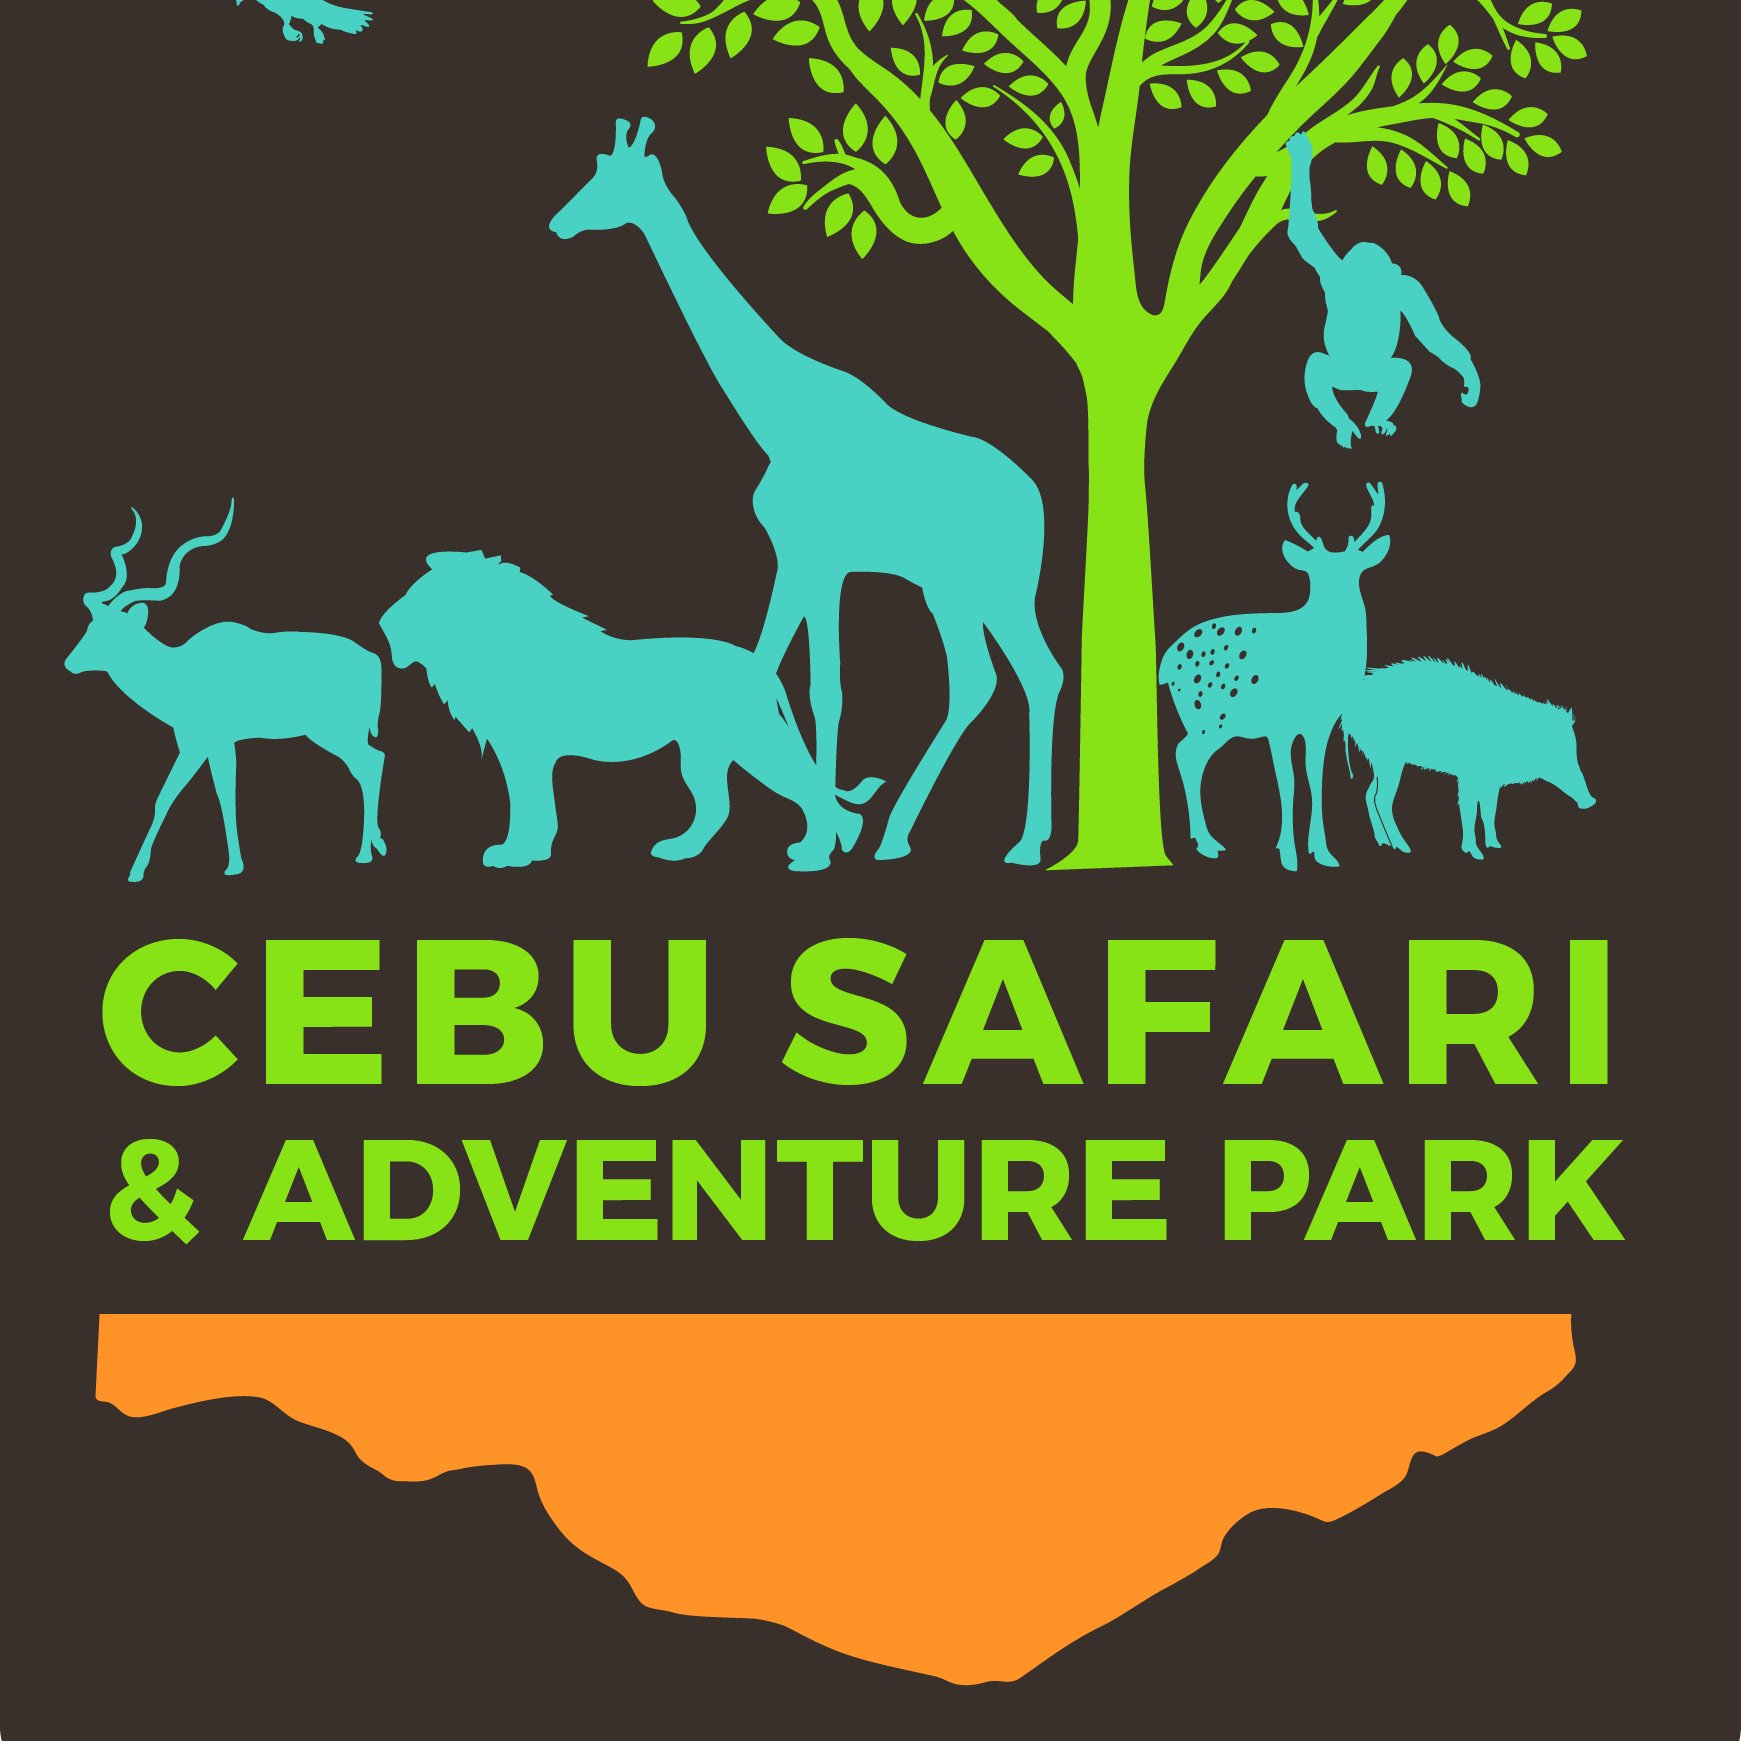 Cebu Safari Adventure Park On Twitter Let Your Children Rediscover The Magic Of The Wild Whole Day Admission To The Park African Savanna Tour Bird Show White